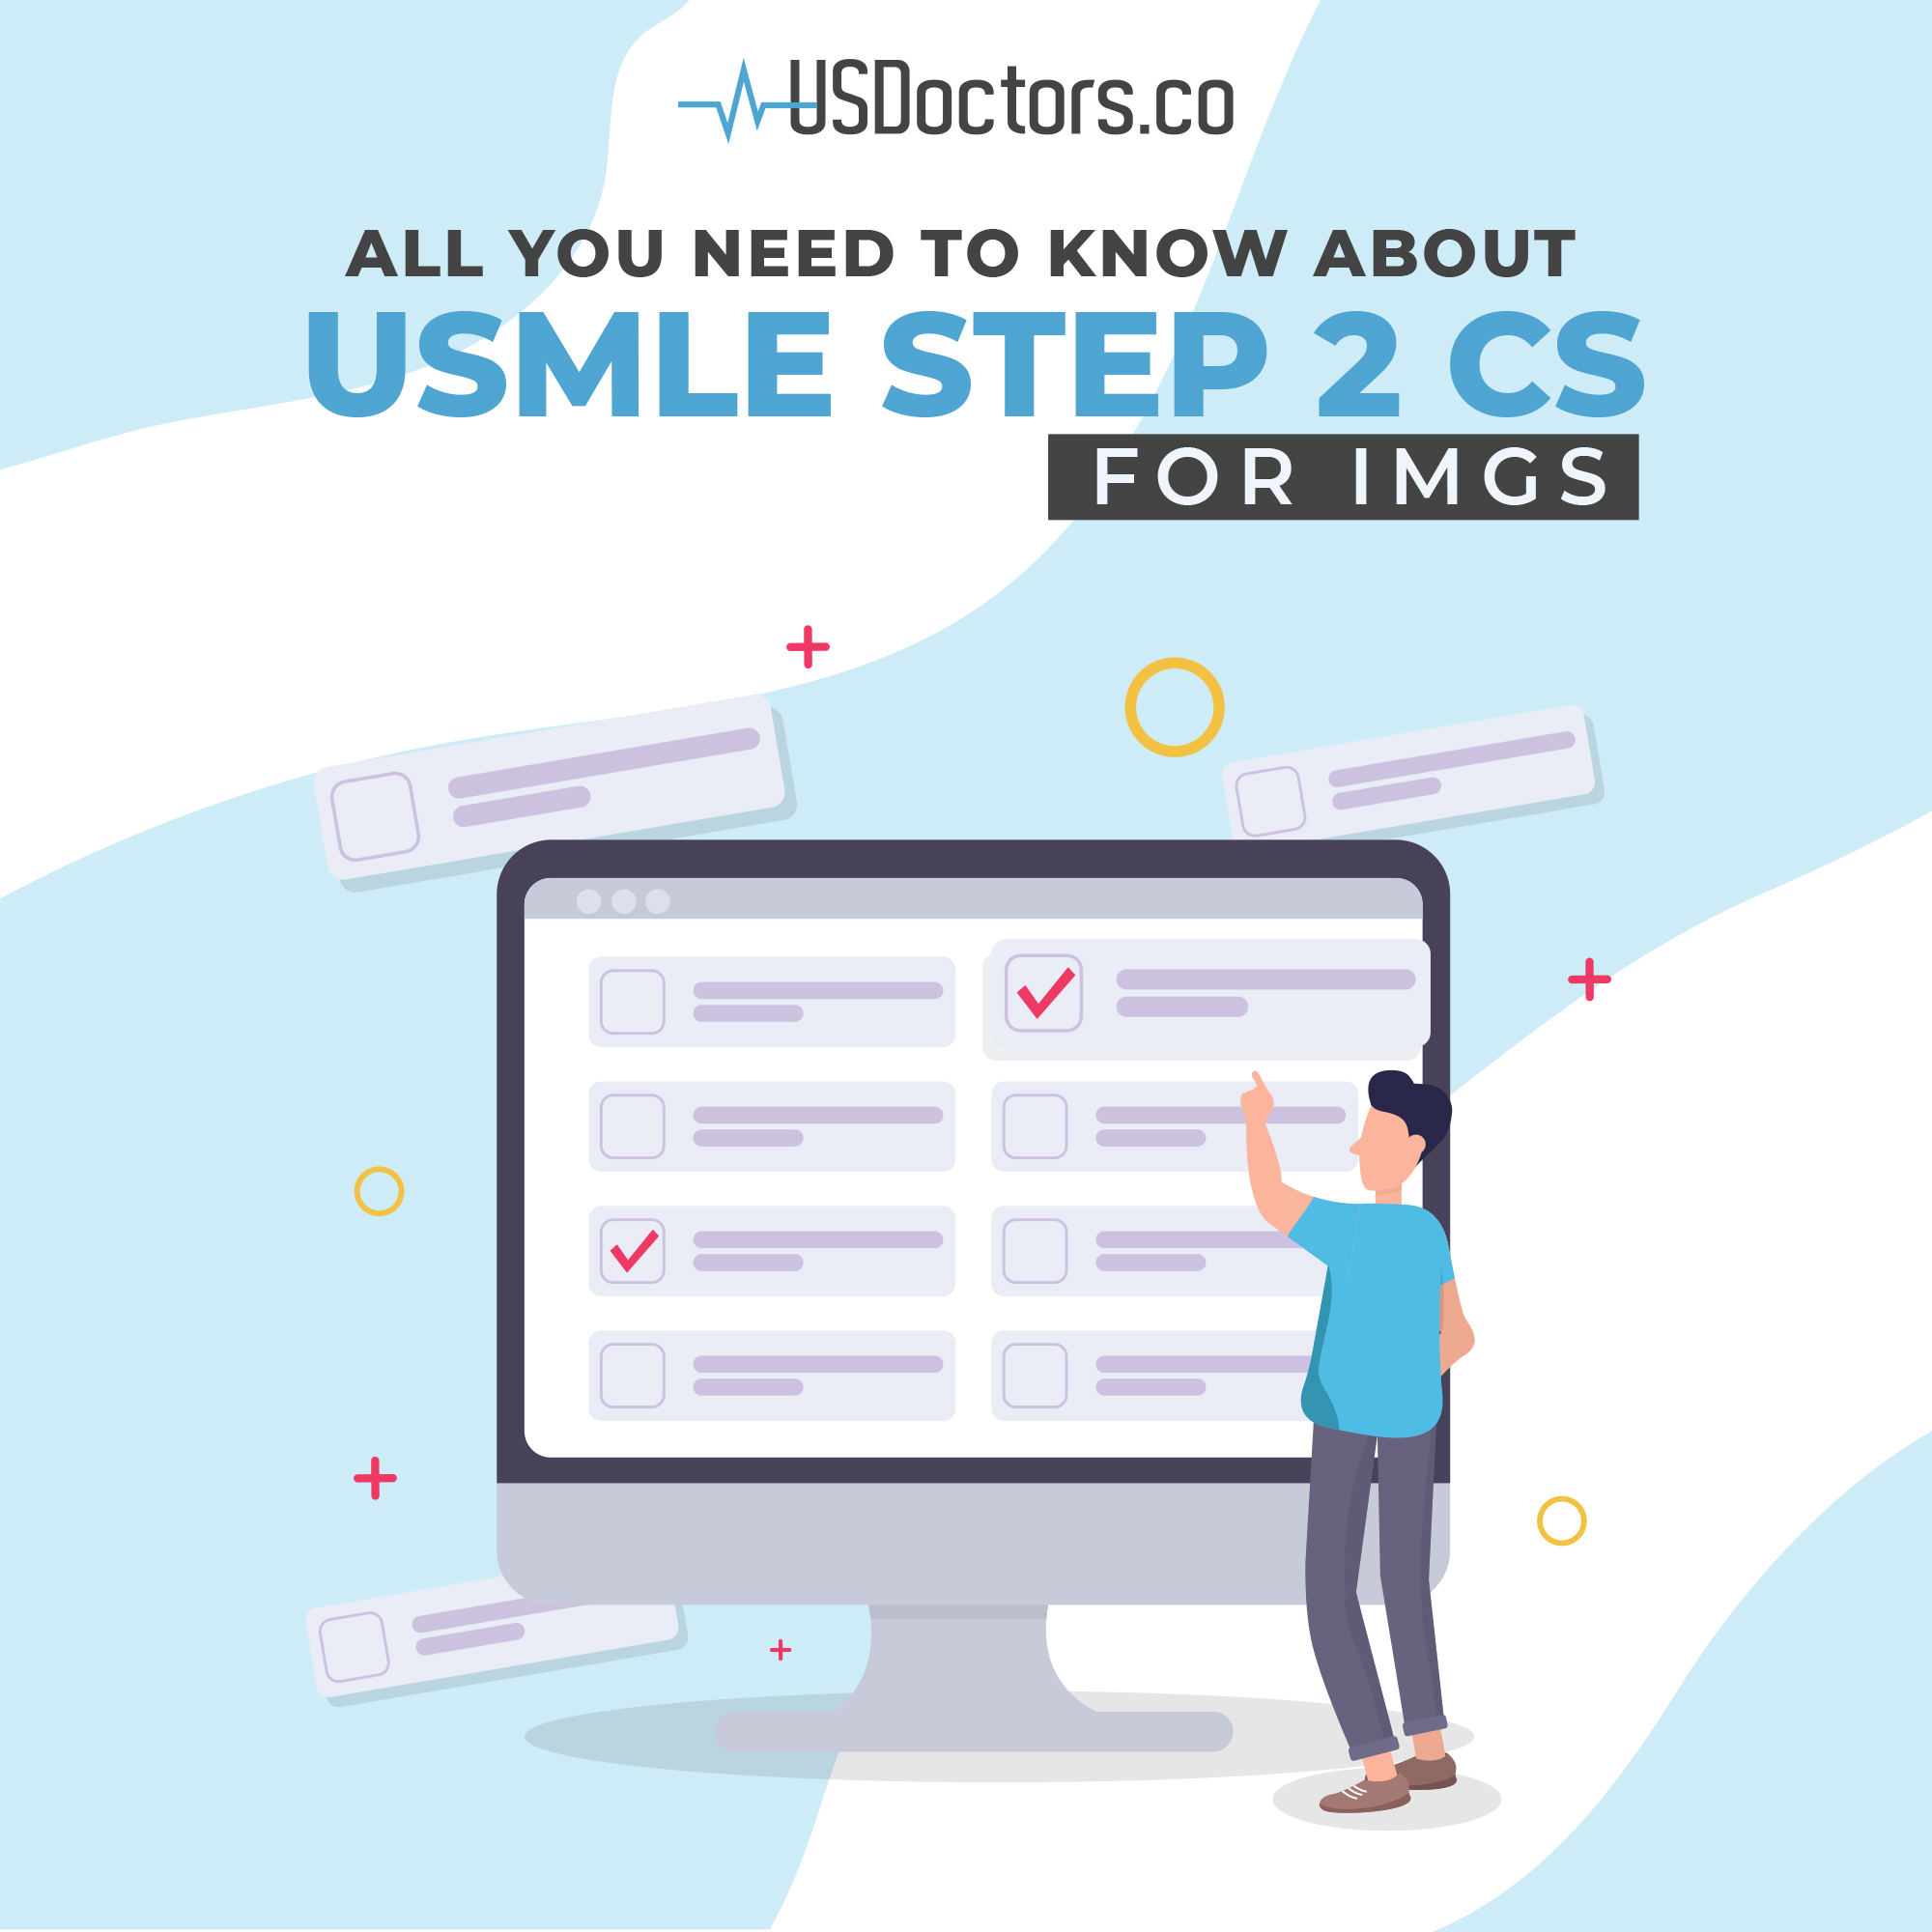 USMLE Step 2 CS for IMGs - All You Need to Know